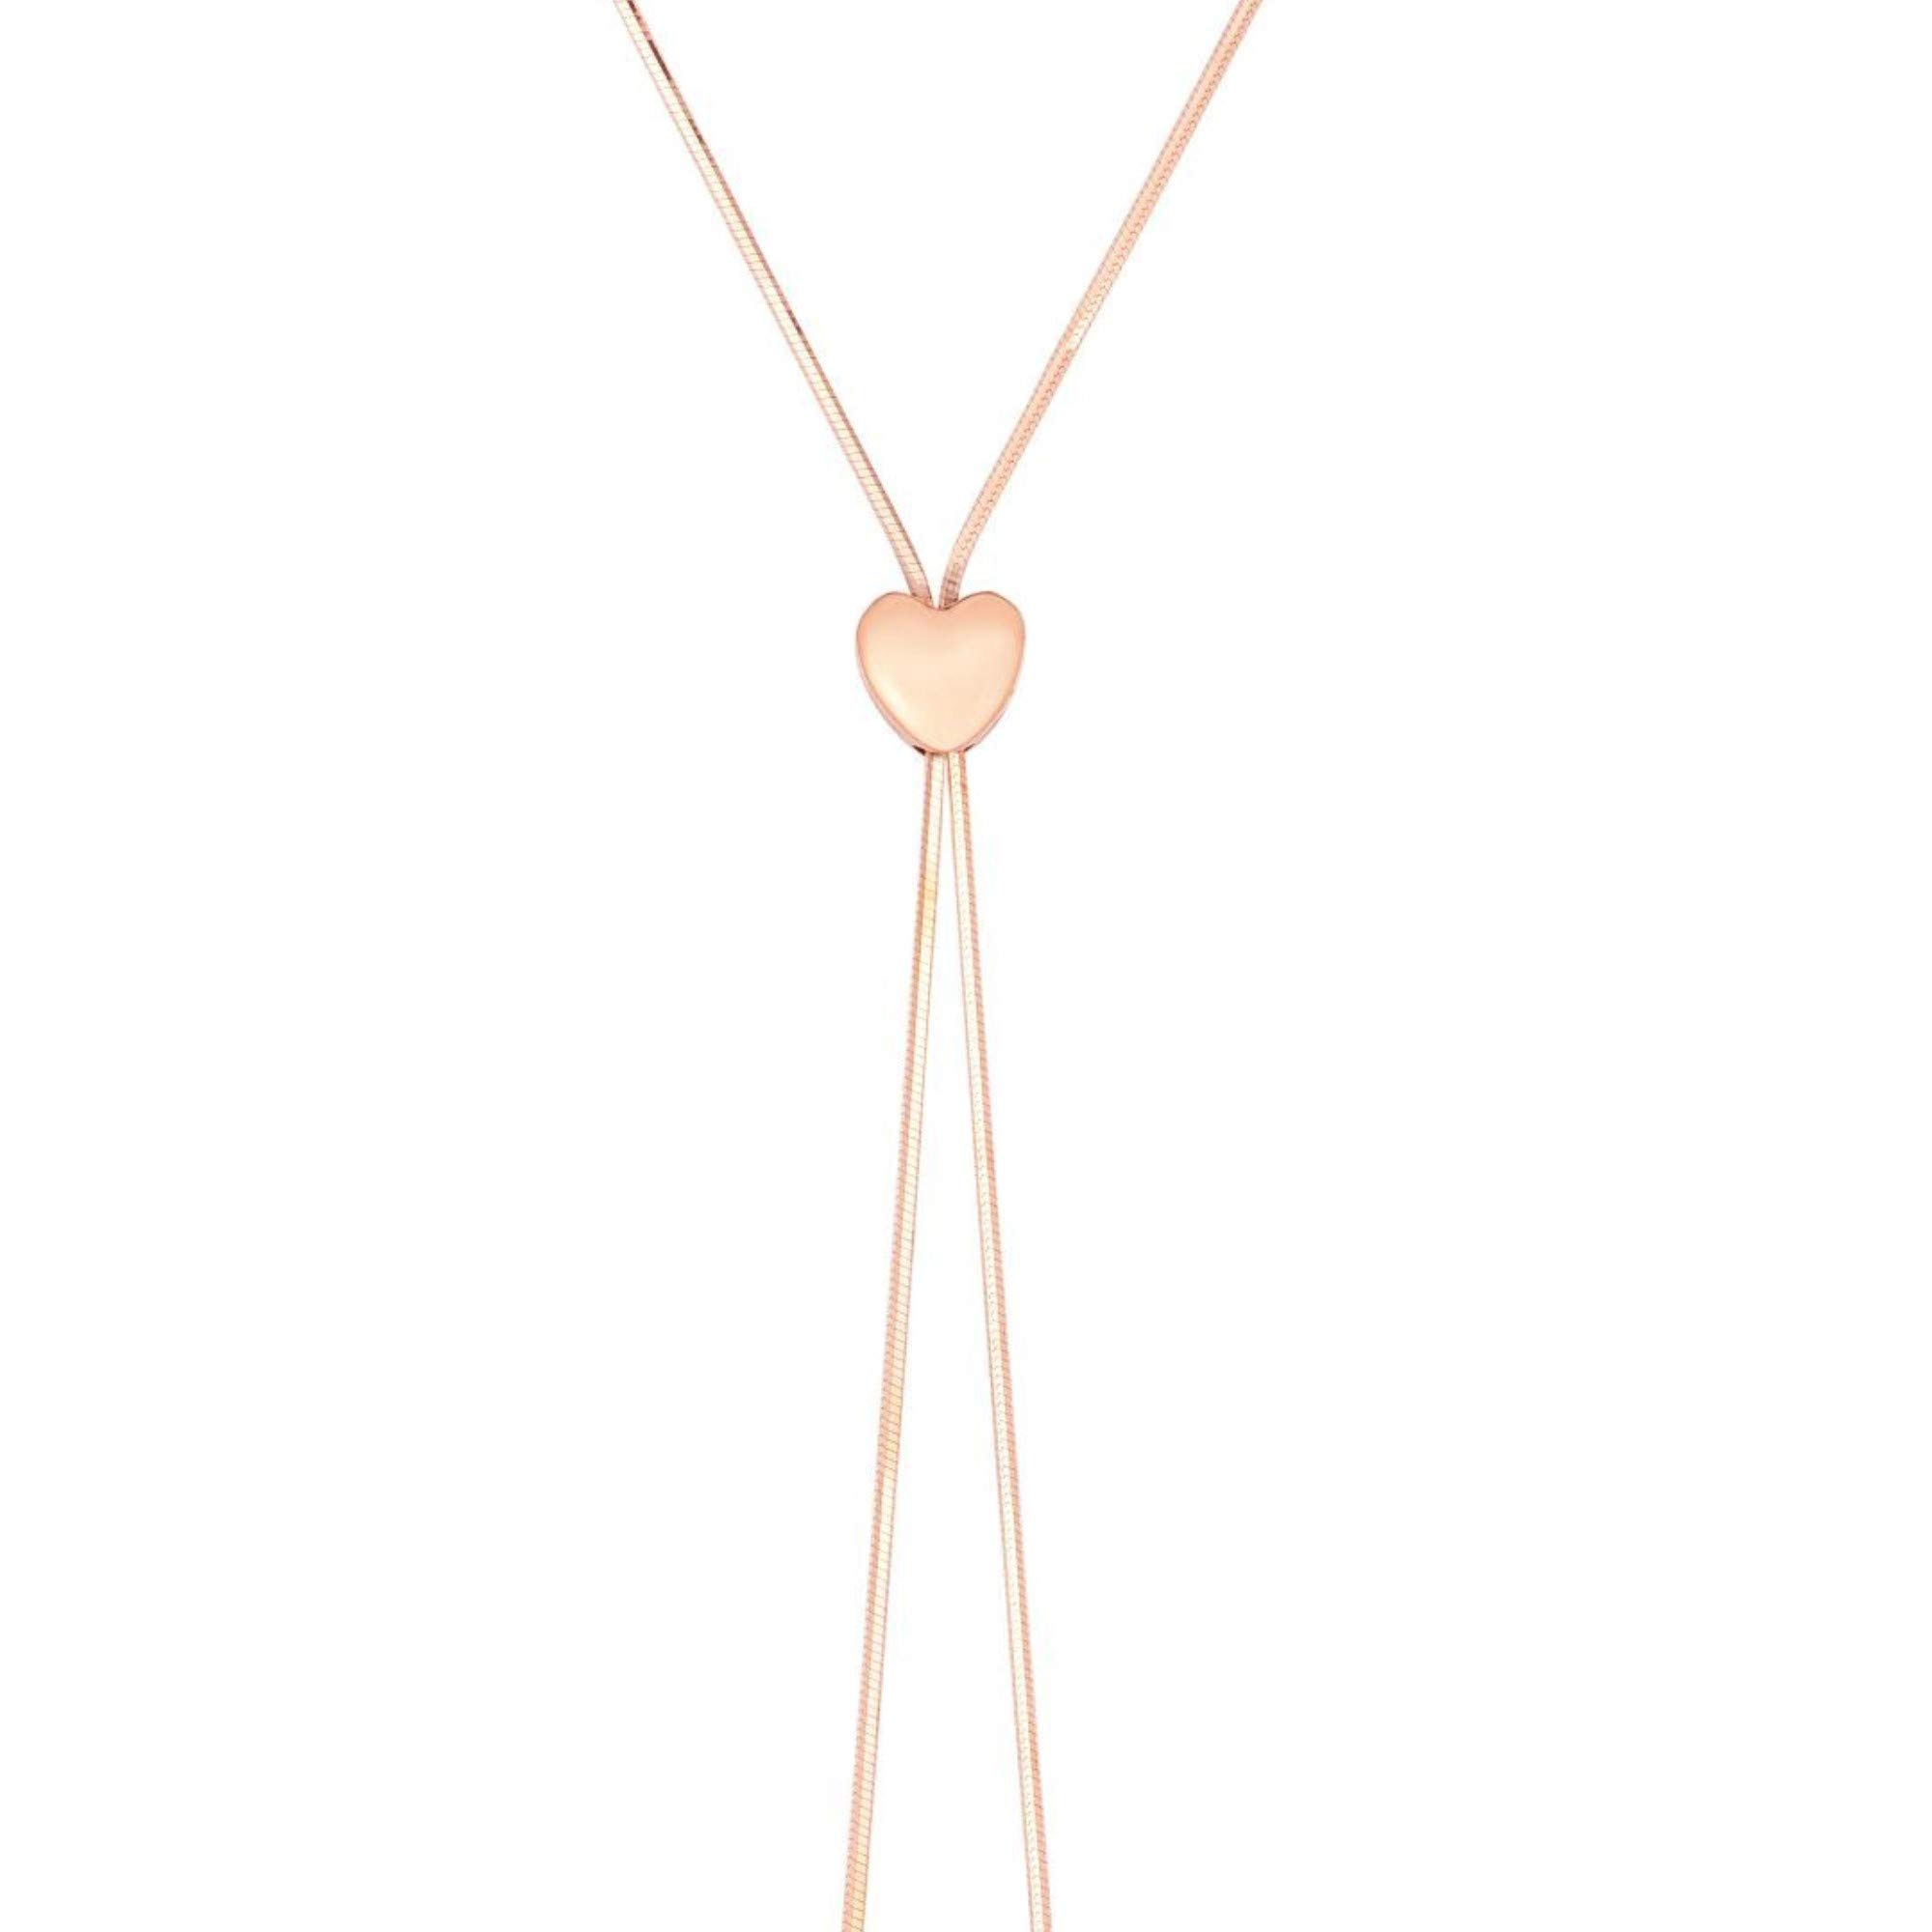 BH 5 Star Jewelry 14kt 24'' Rose Gold Heart Necklace with Draw String Clasp